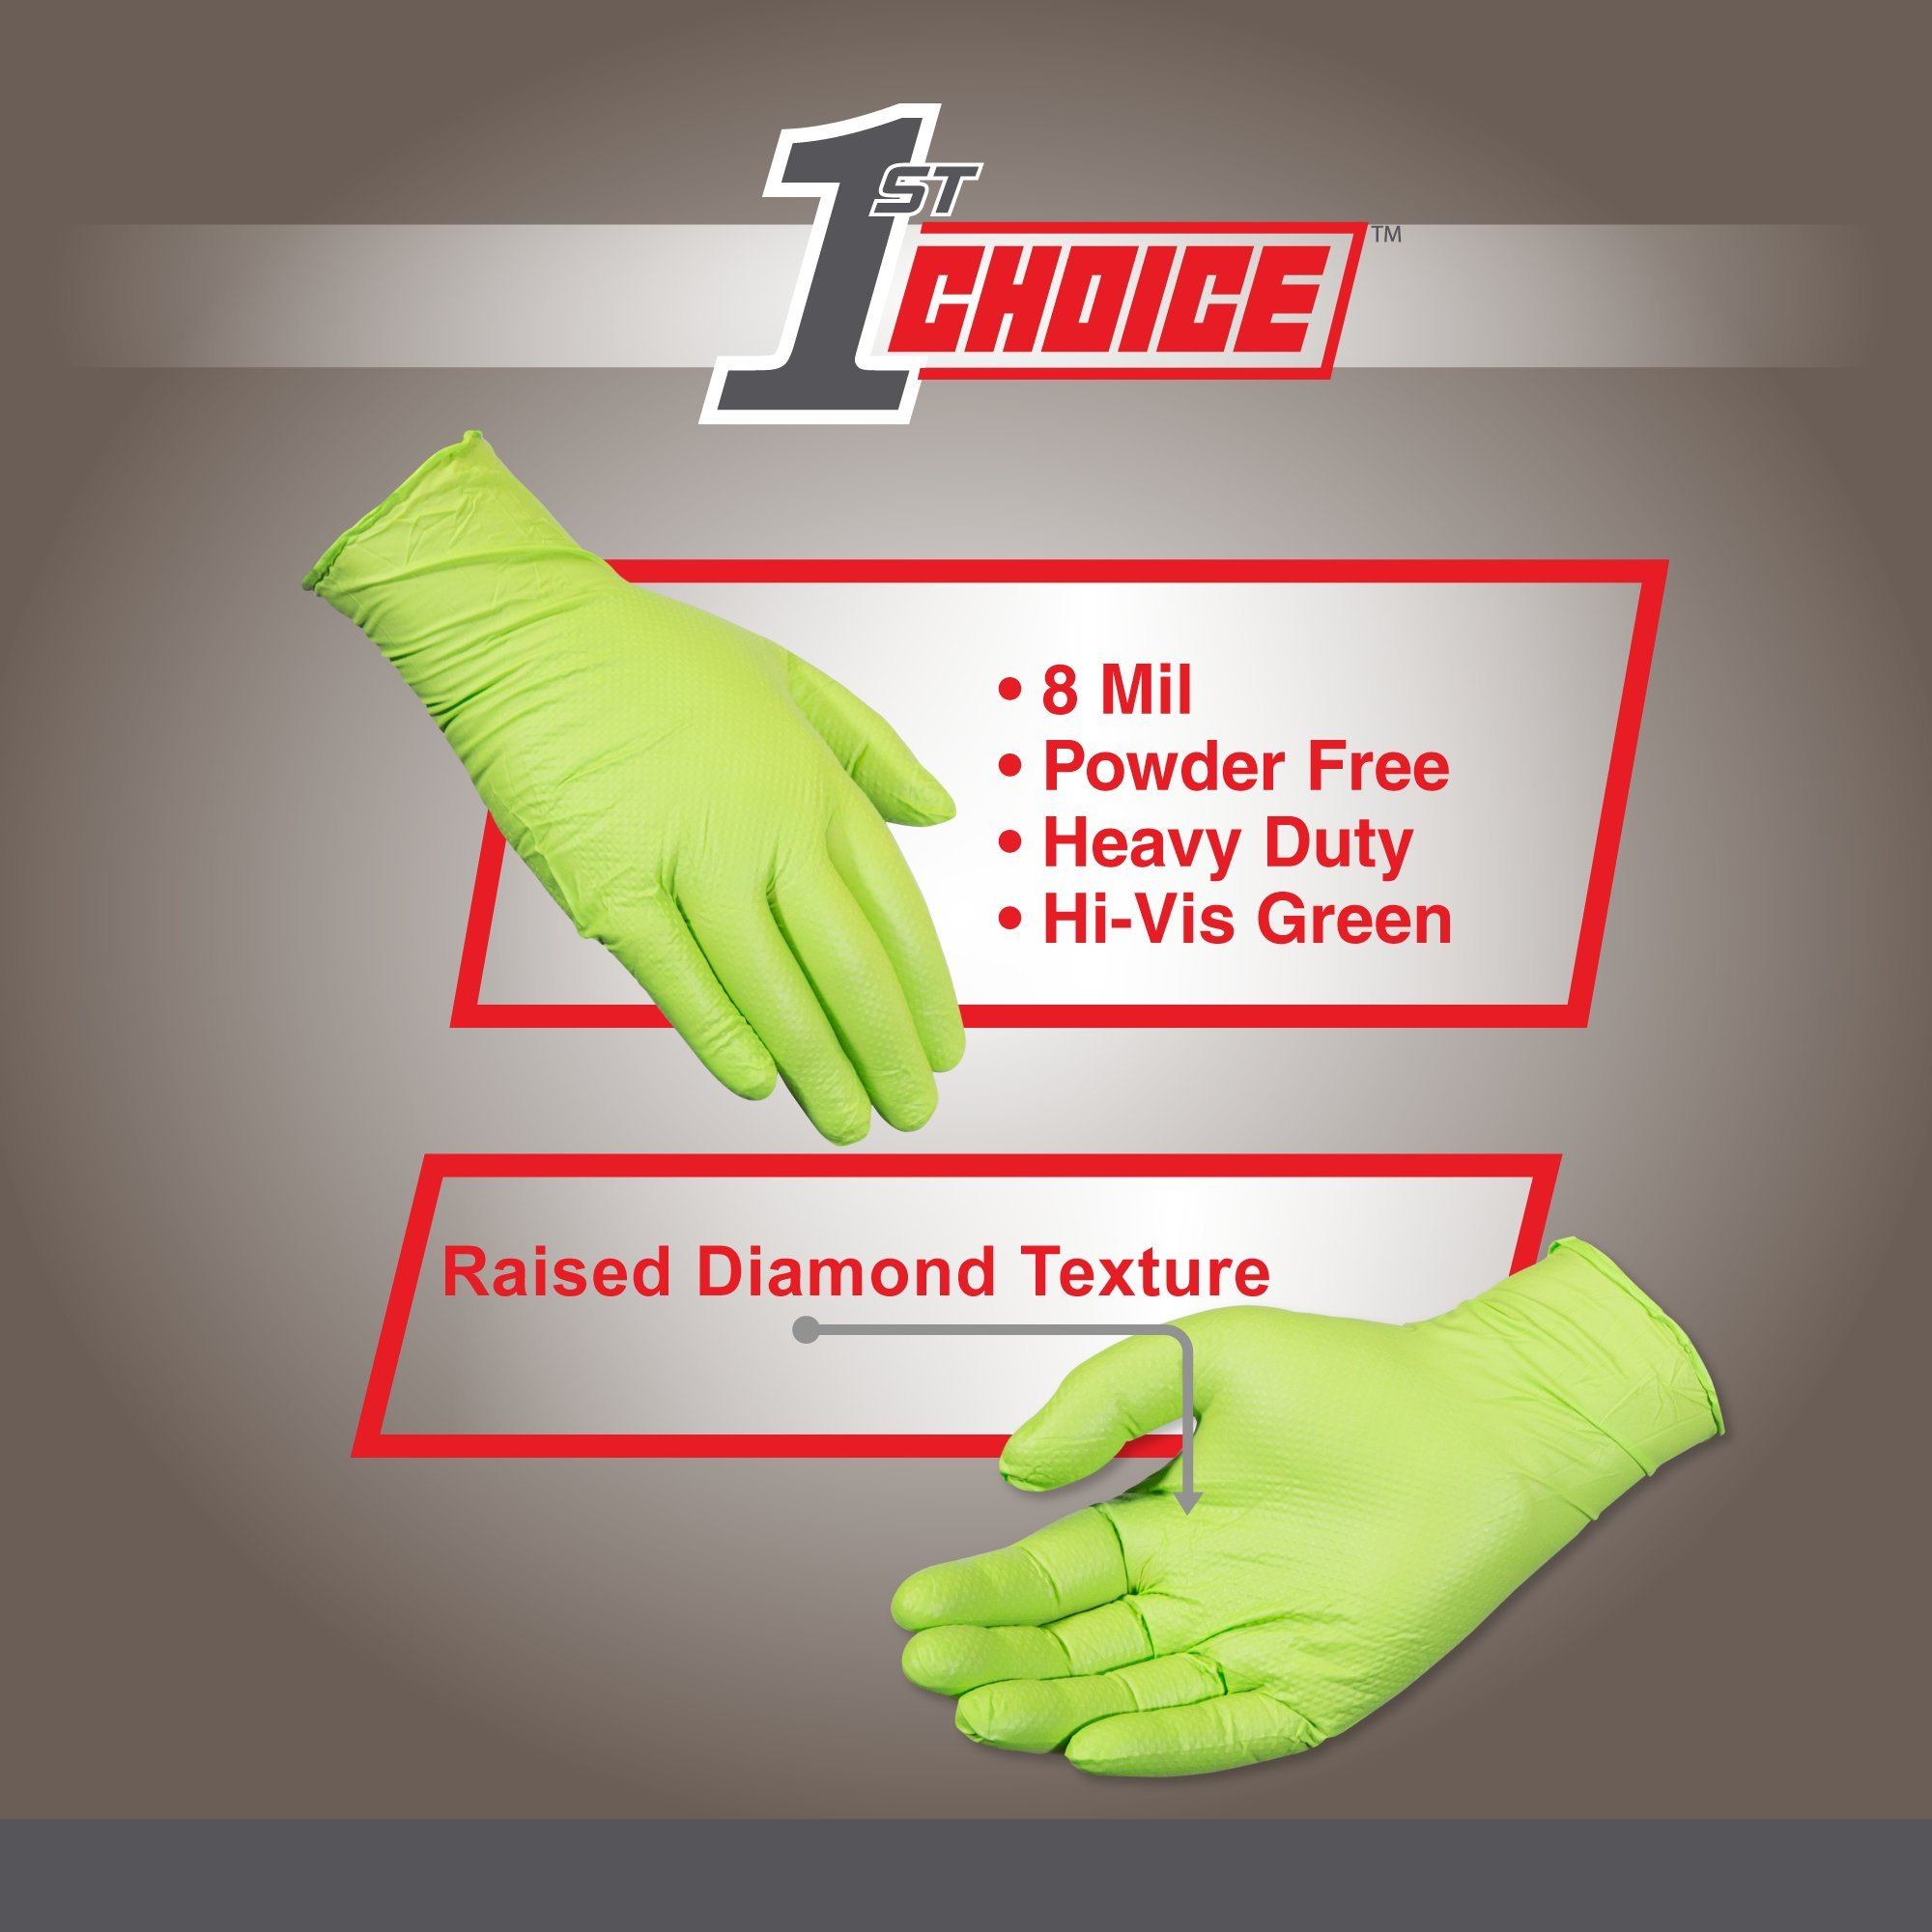 1st Choice Industrial 8 Mil Green Nitrile Gloves - Latex Free, Powder Free, Non-Sterile, Large, Case of 400 by 1st Choice (Image #3)